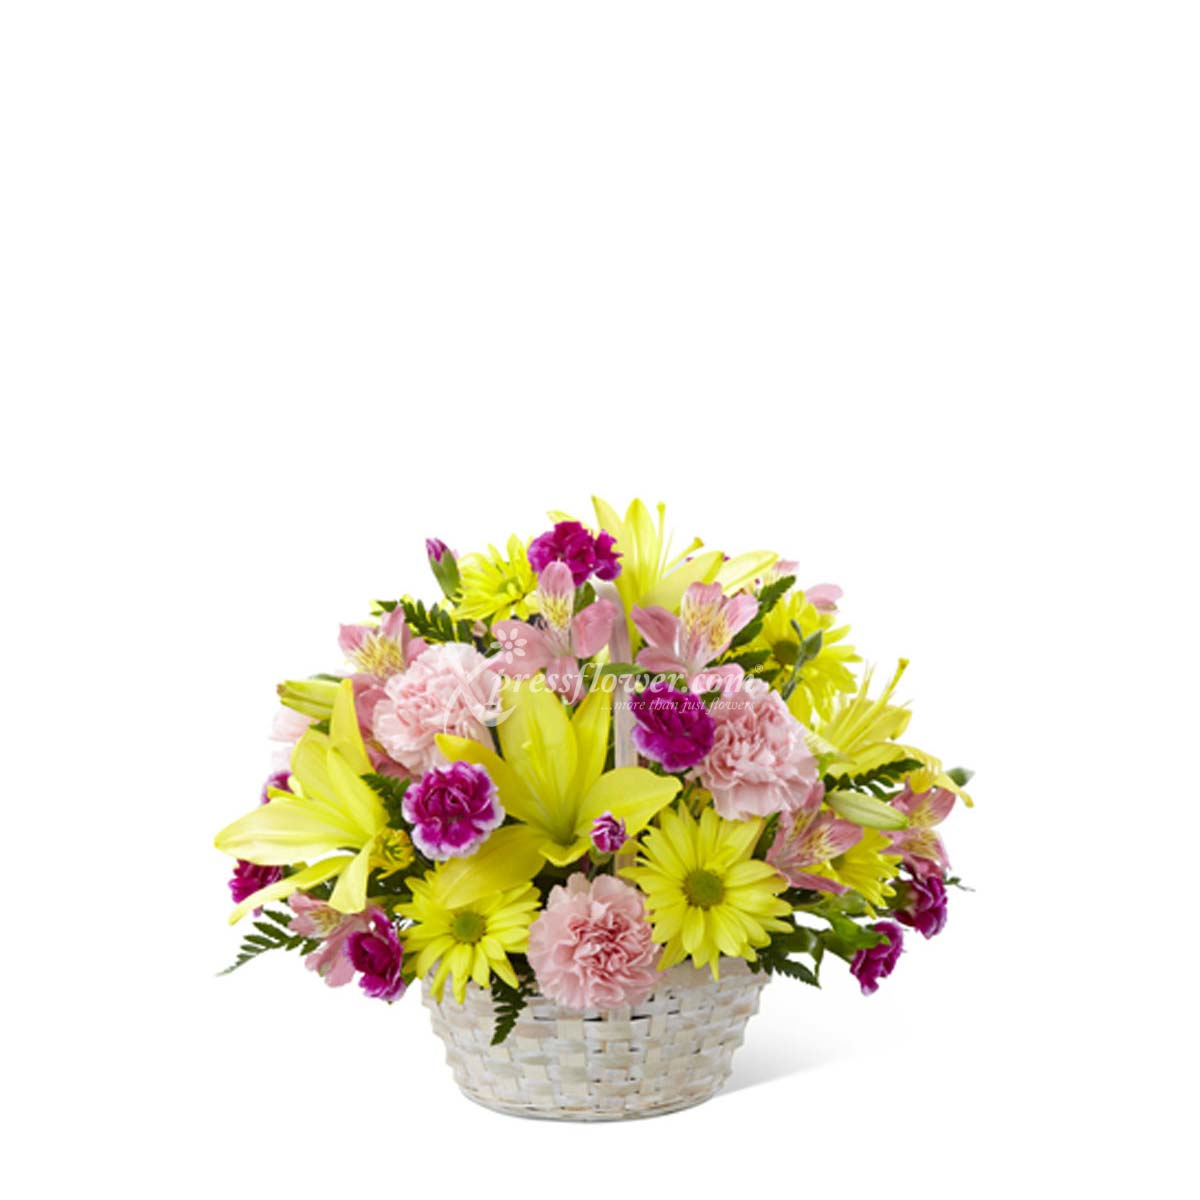 ARRANGEMENT OF FLOWERS IN BASKET (TW)